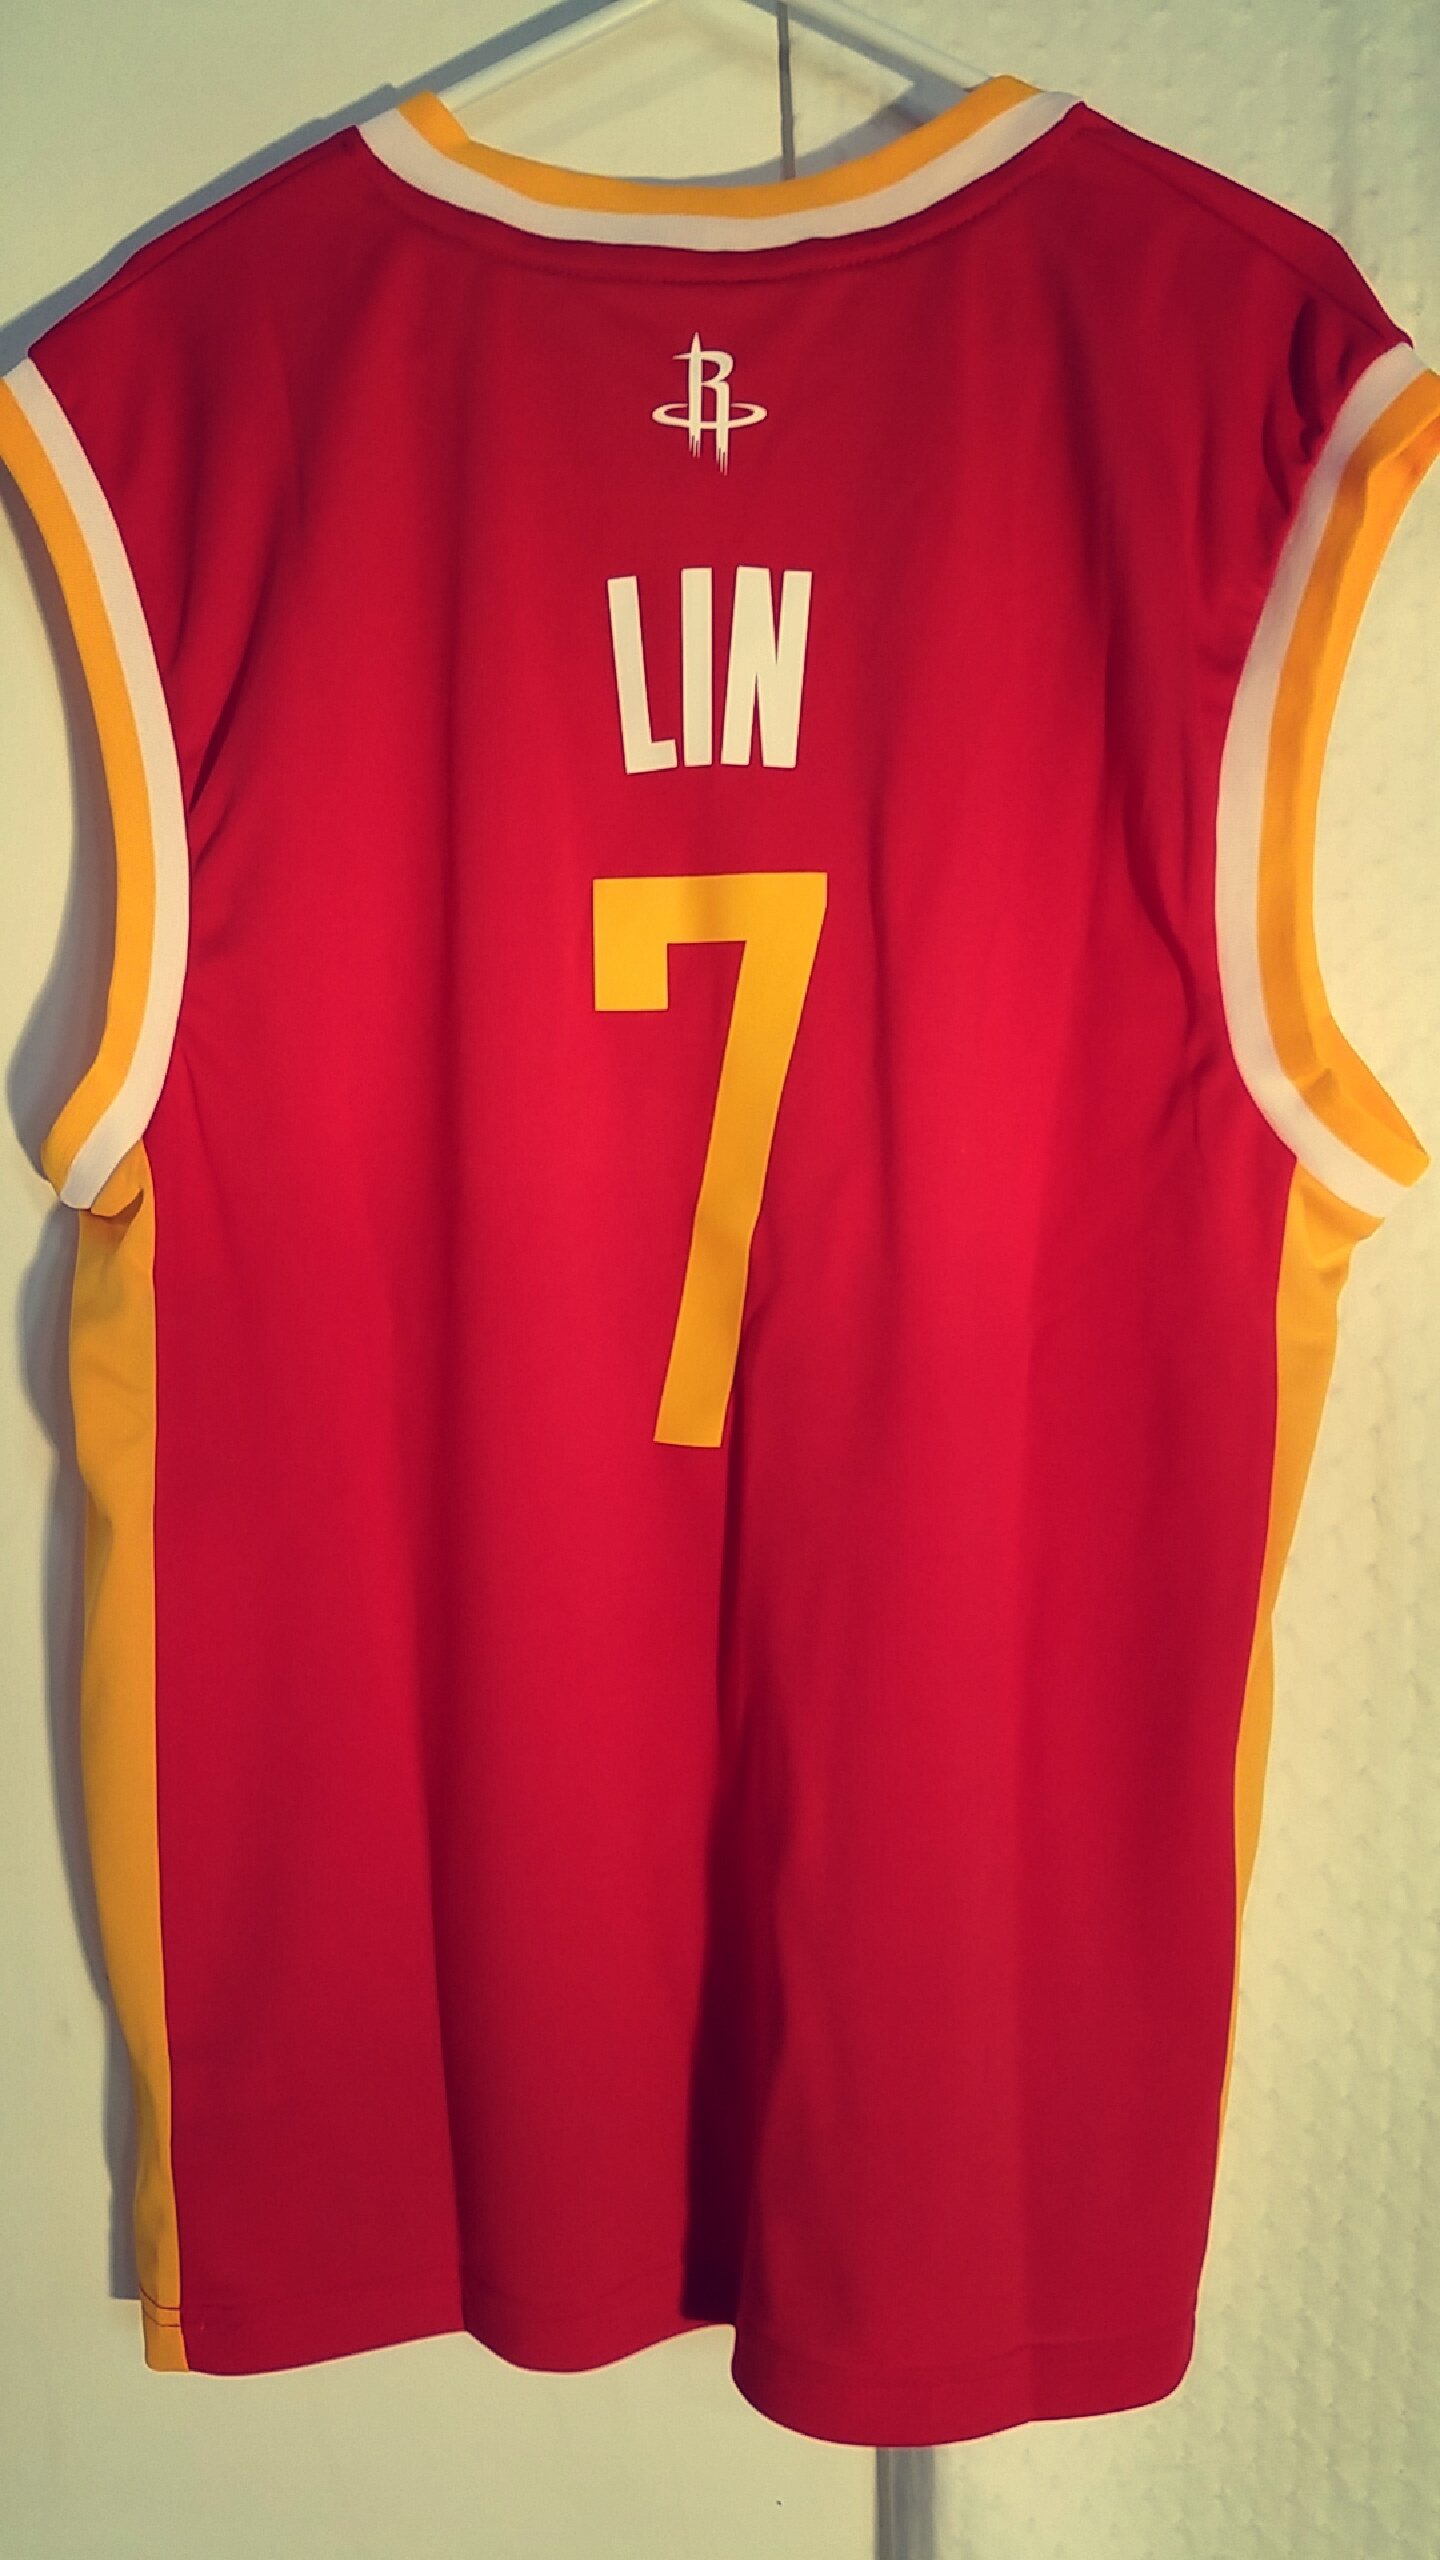 c1cba9d99 Adidas NBA Jersey Houston Rockets Jeremy Lin Red Alt sz L